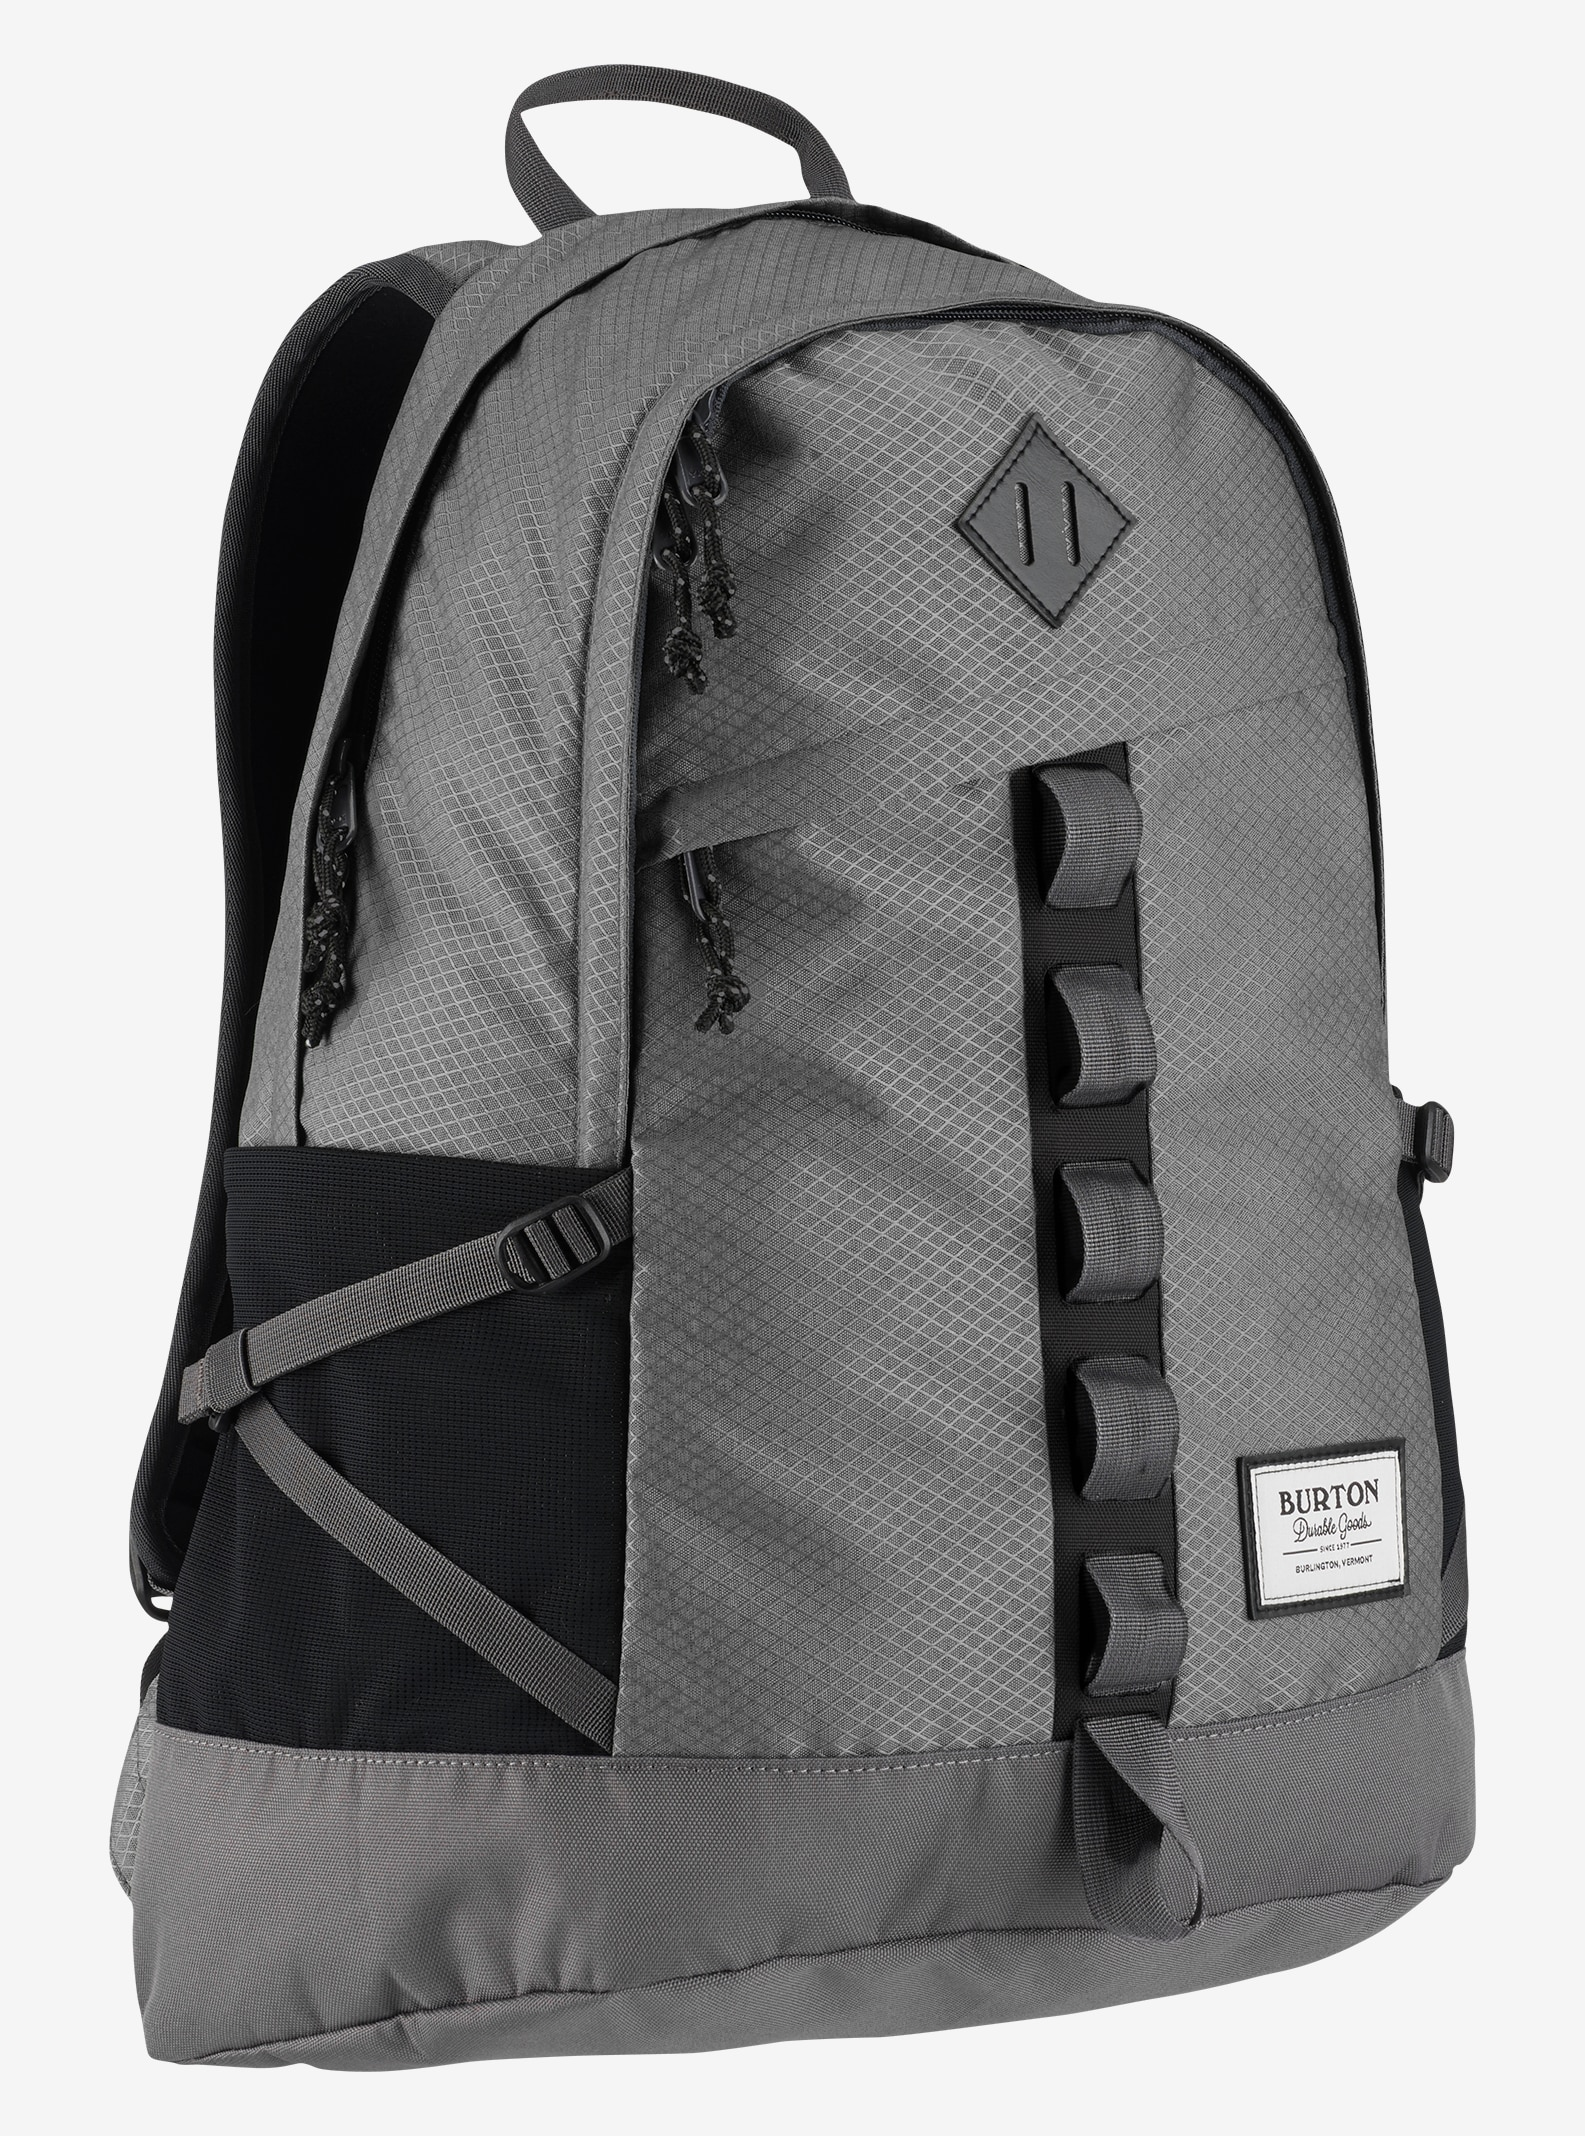 Burton Shackford Backpack shown in Faded Diamond Ripstop